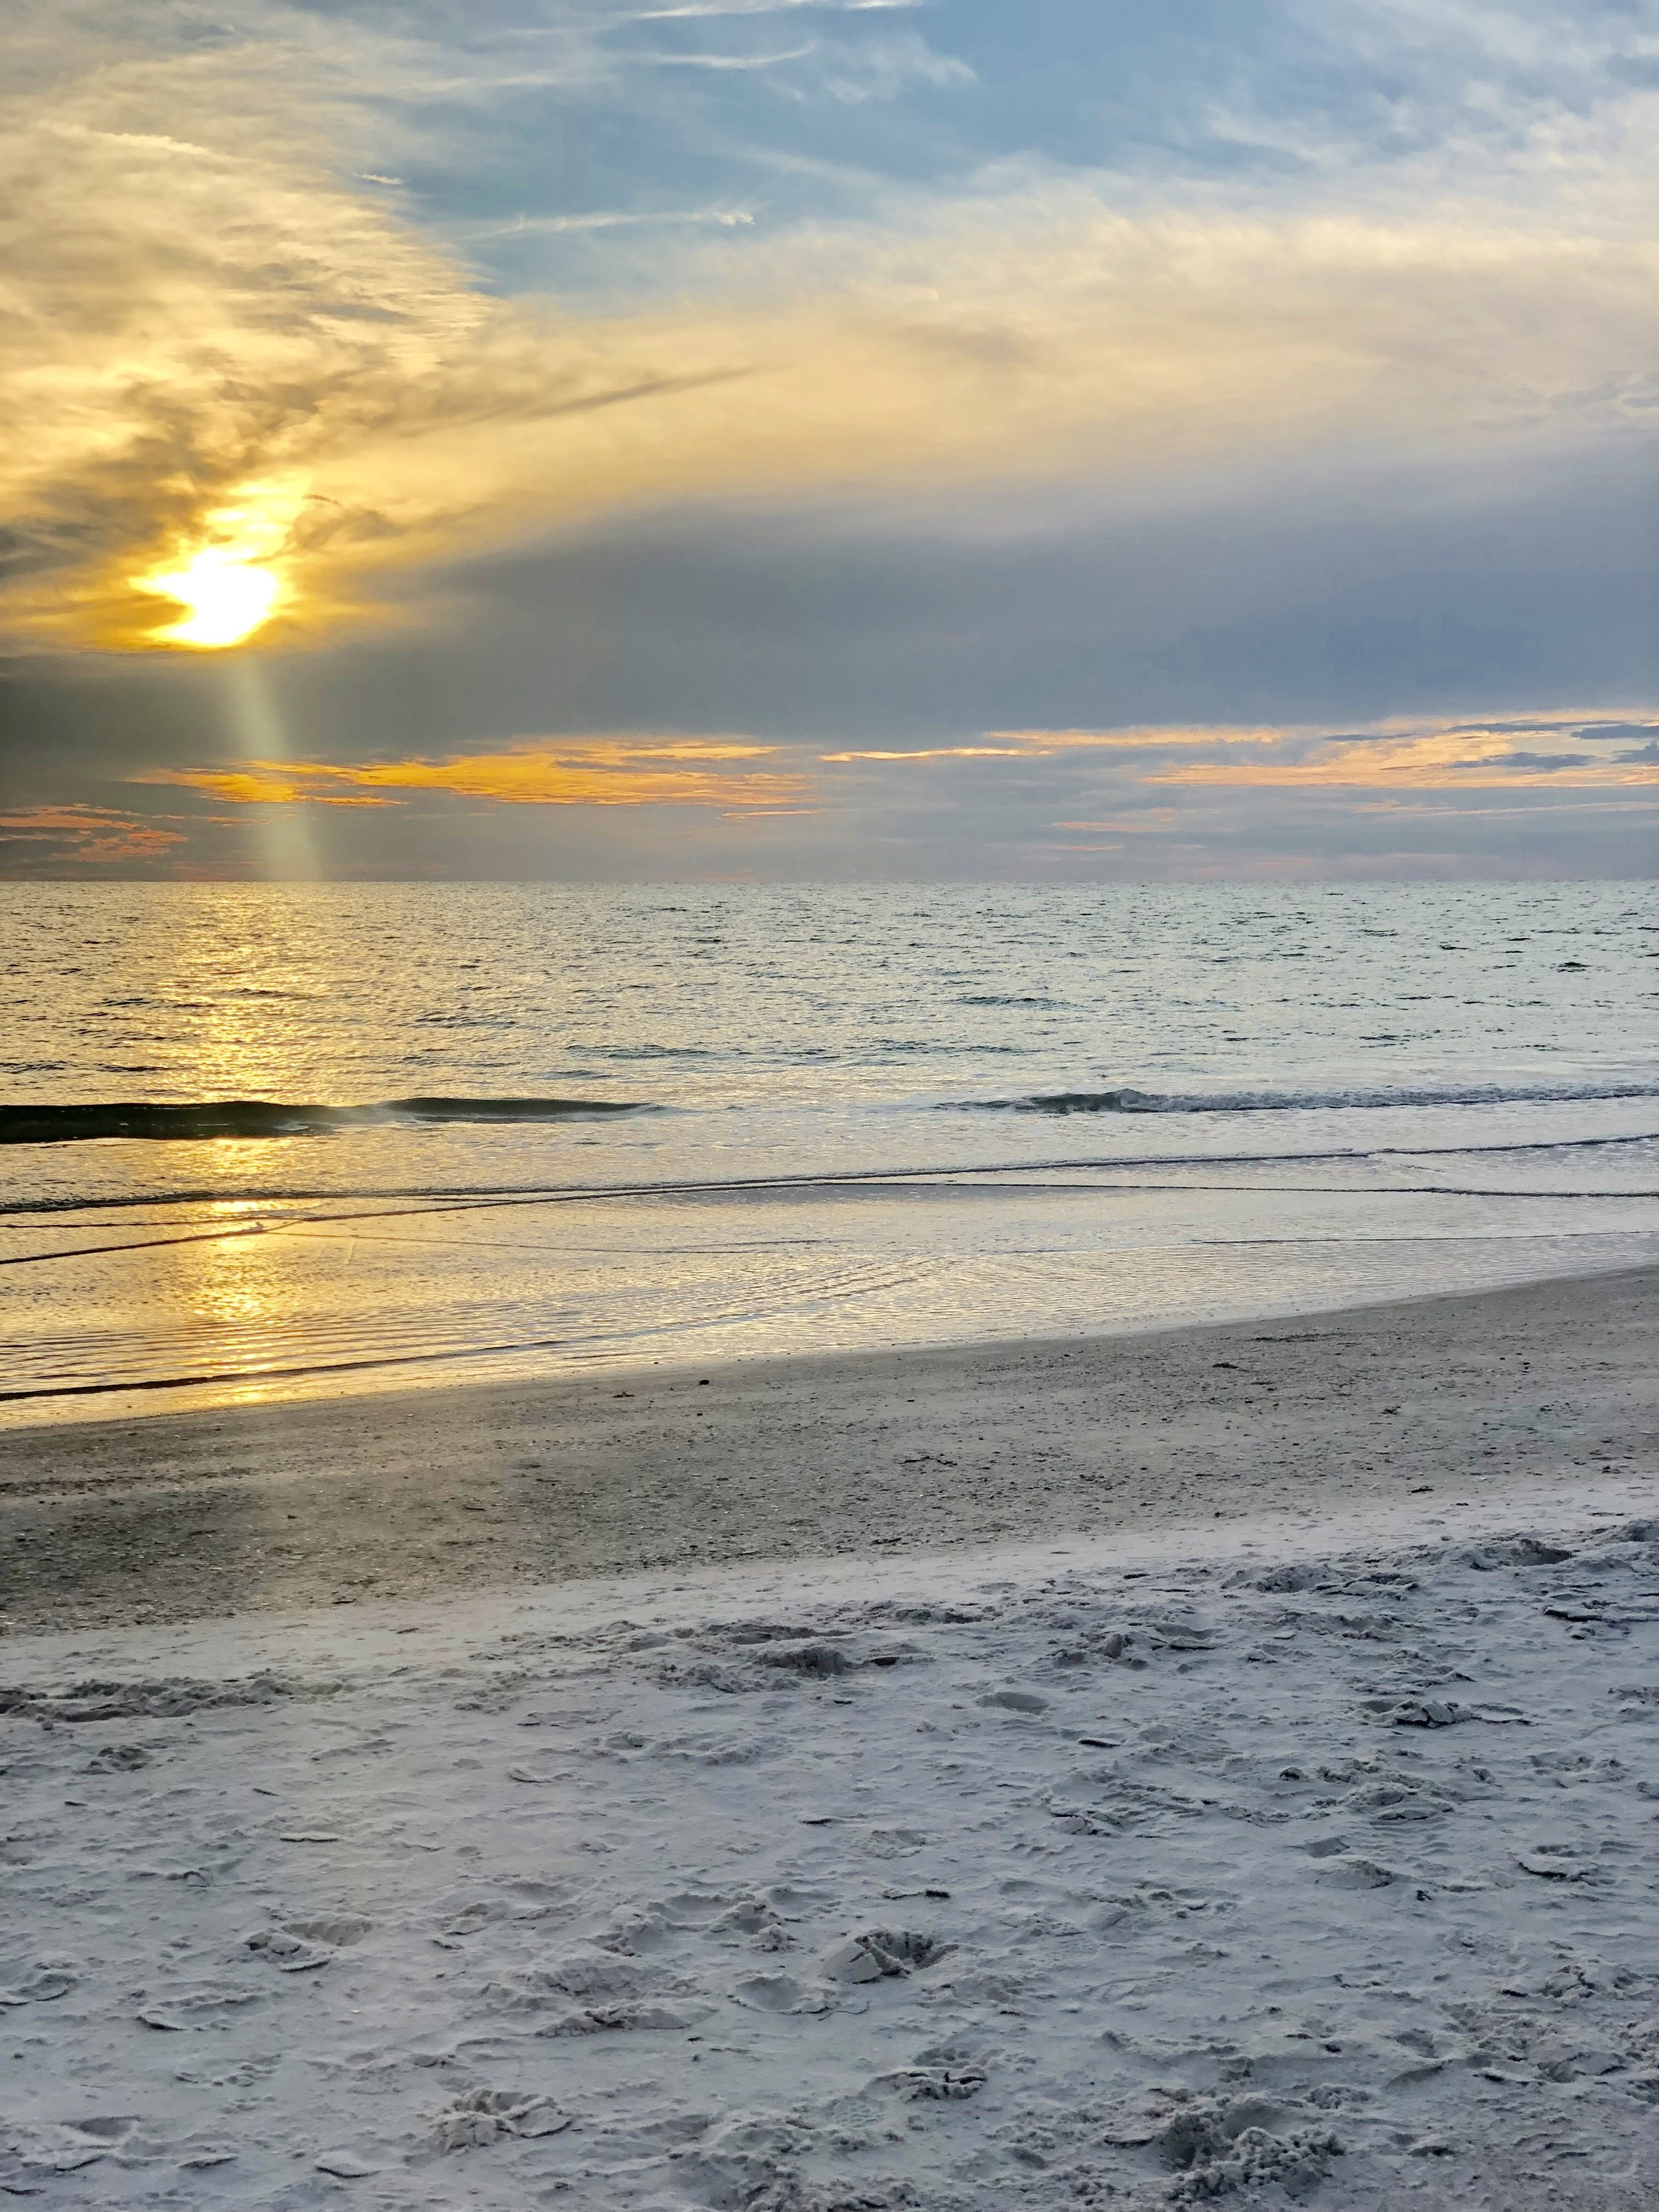 Stunning sunsets on Anna Maria Beach are just 300 steps away!